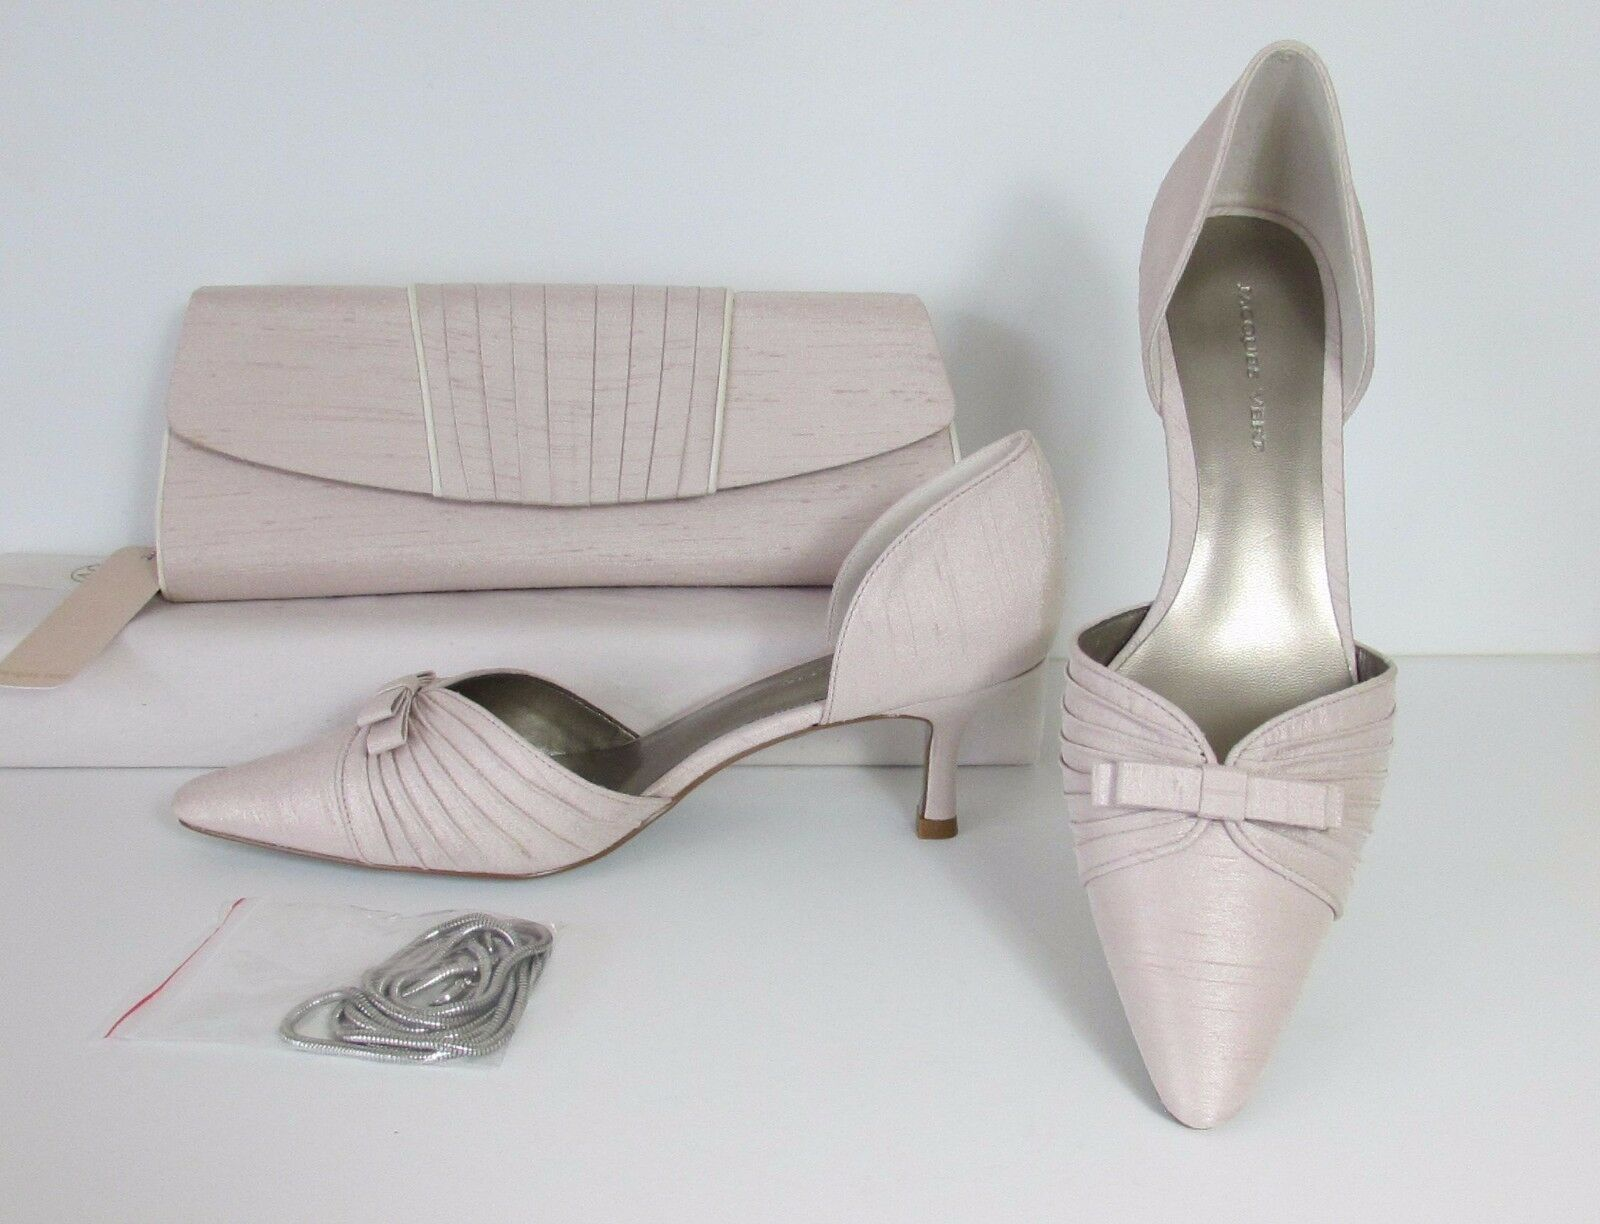 Jacques Vert Champagne Court Schuhes and Matching Bag  NEW 6     6 NEW & 7 (MB 8e34ed